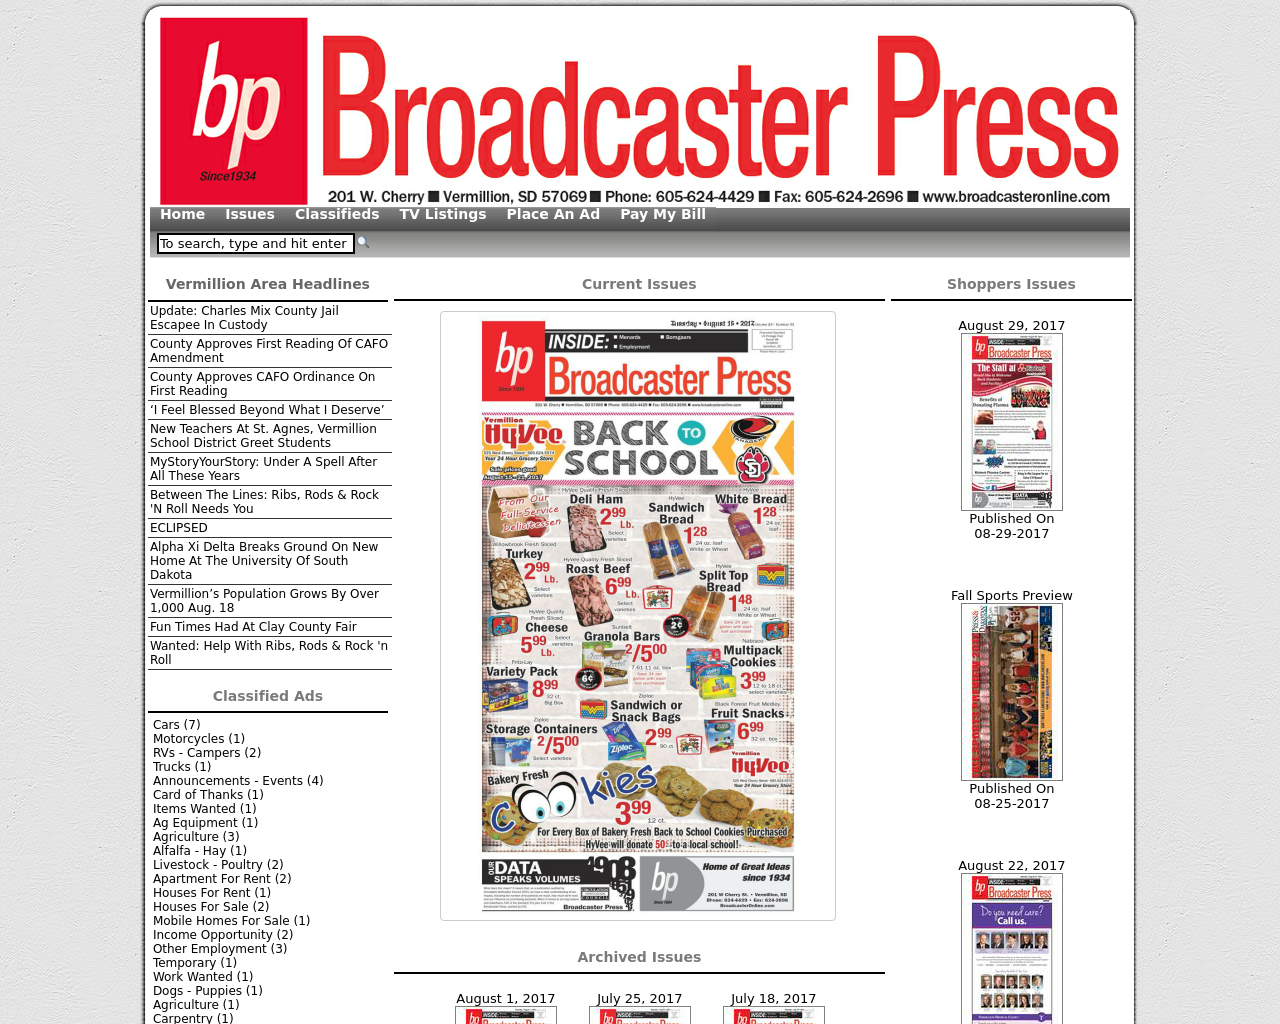 Broadcaster-Press-Advertising-Reviews-Pricing